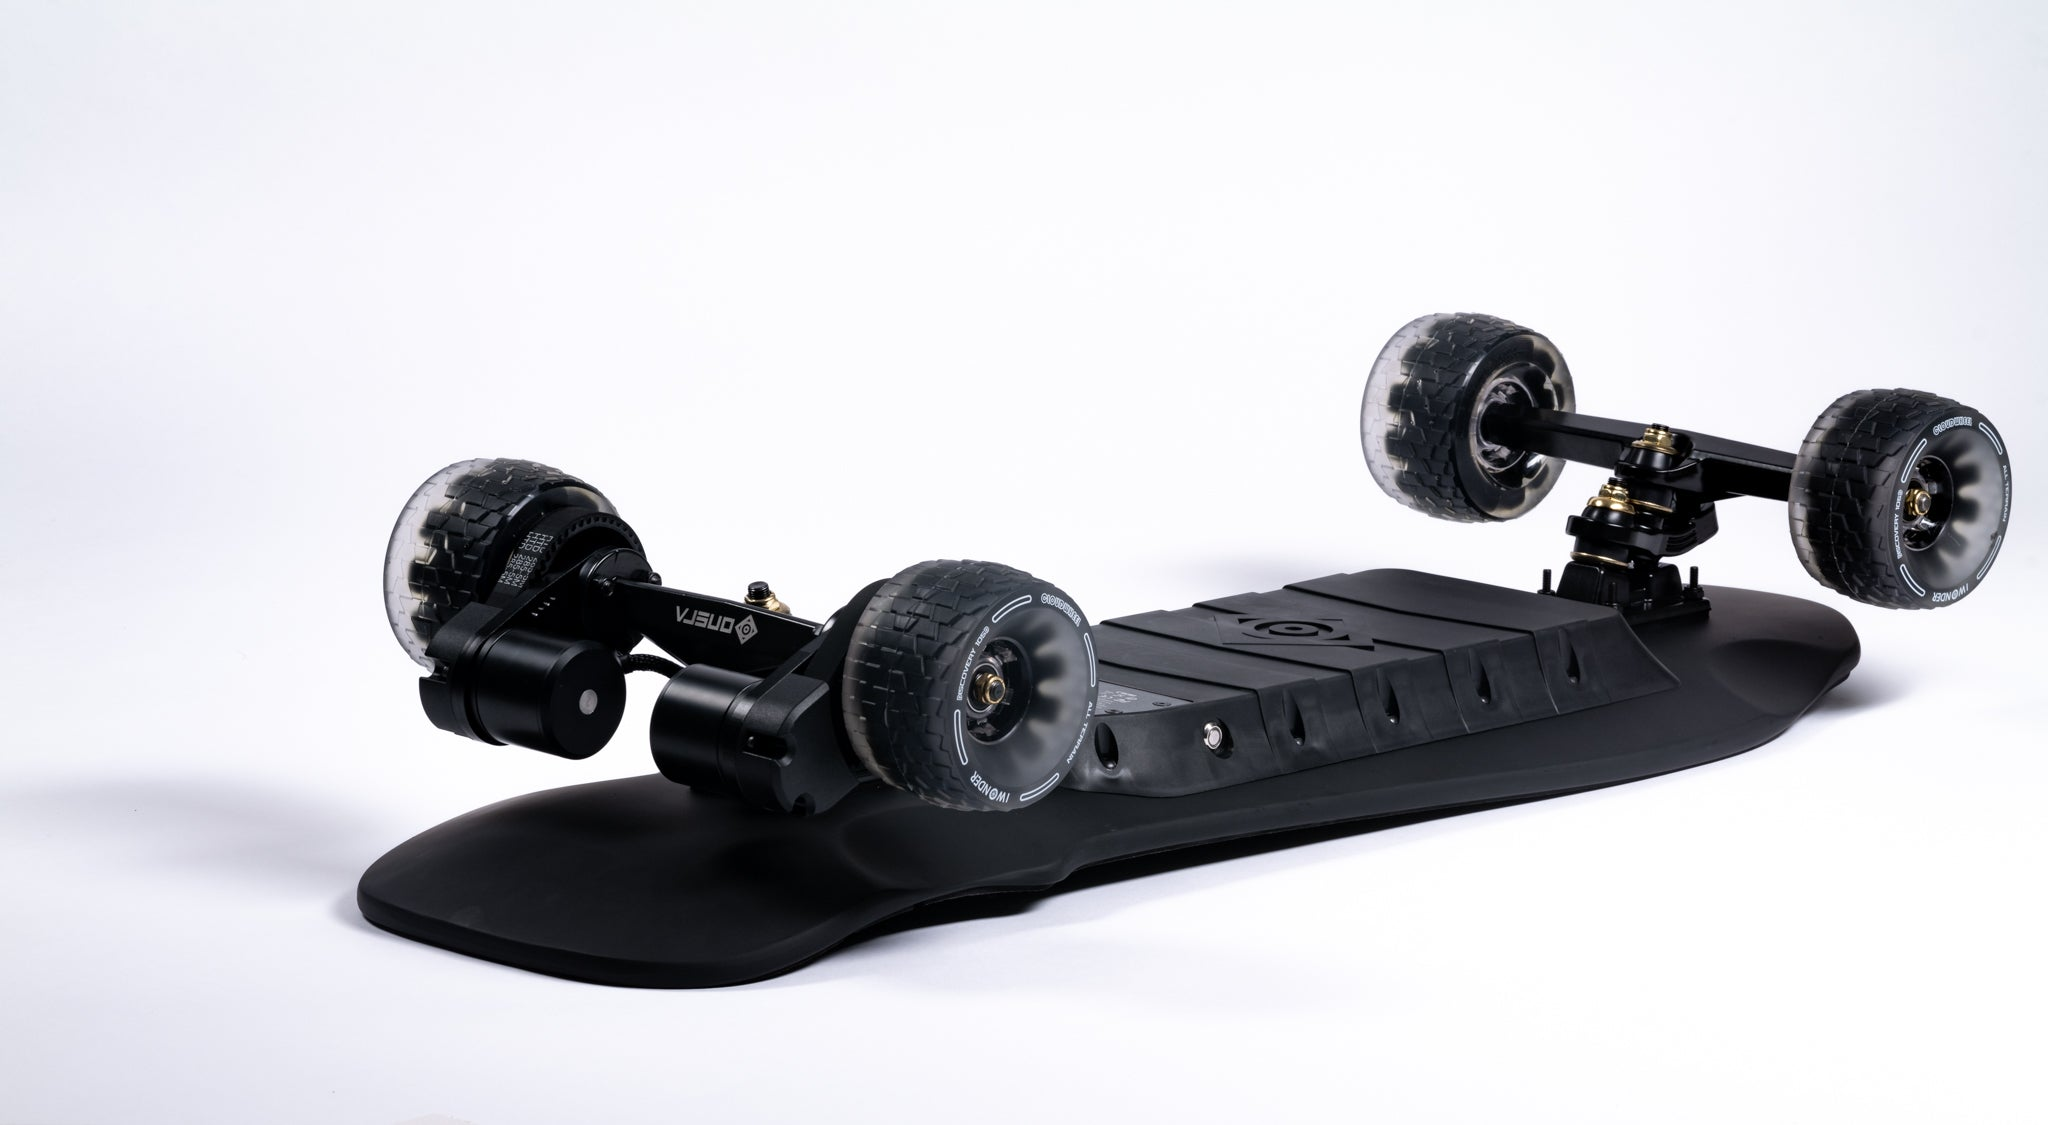 ONSRA Challenger - Belt Drive Electric Skateboard